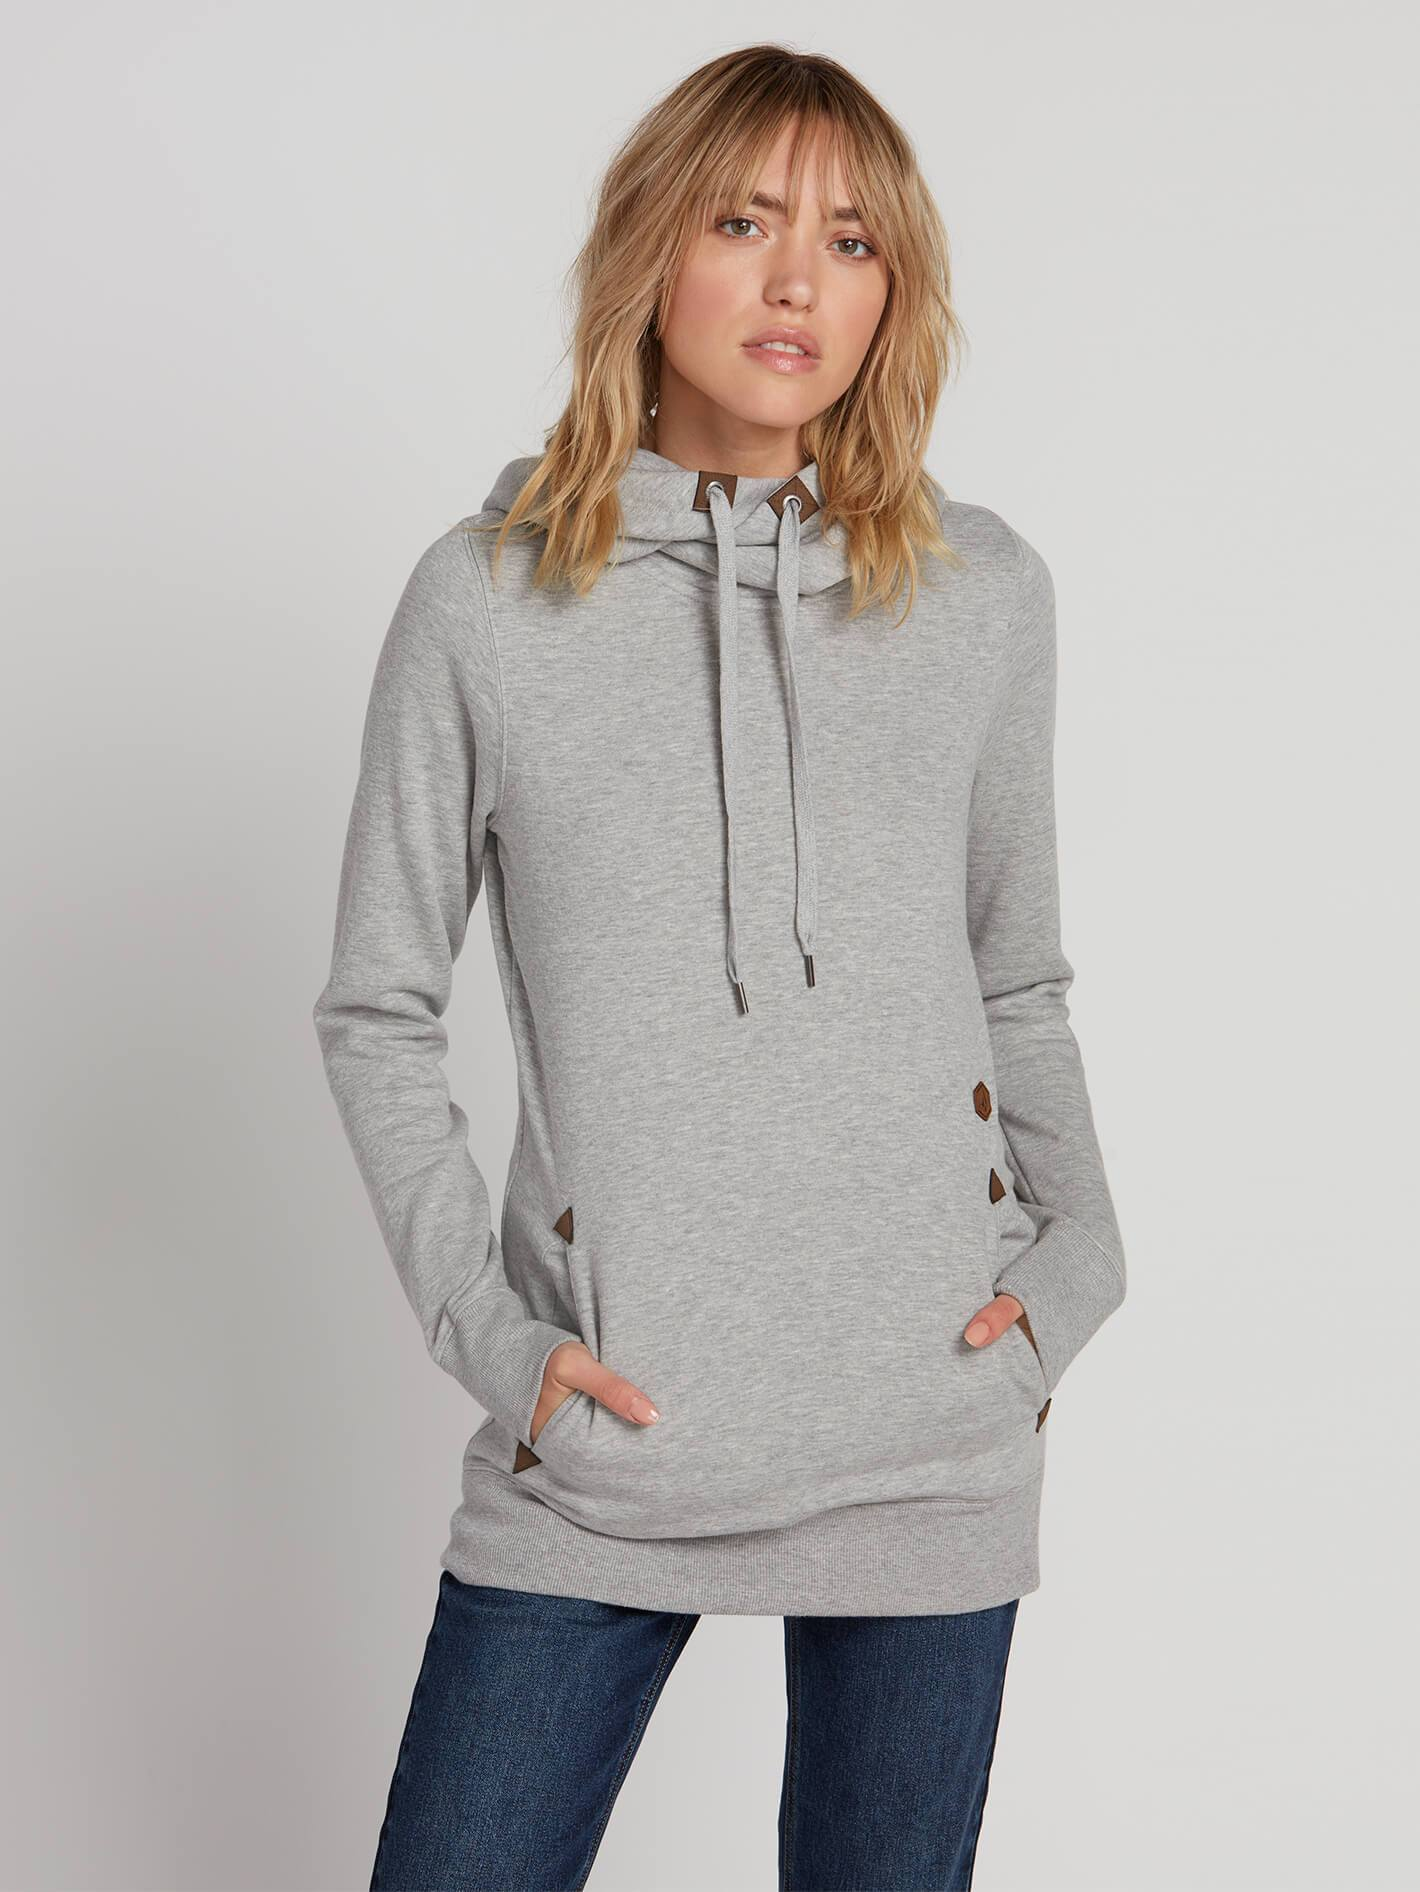 VOLCOM LADIES TOWER PULLOVER FLEECE HEATHER GREY HOODIE